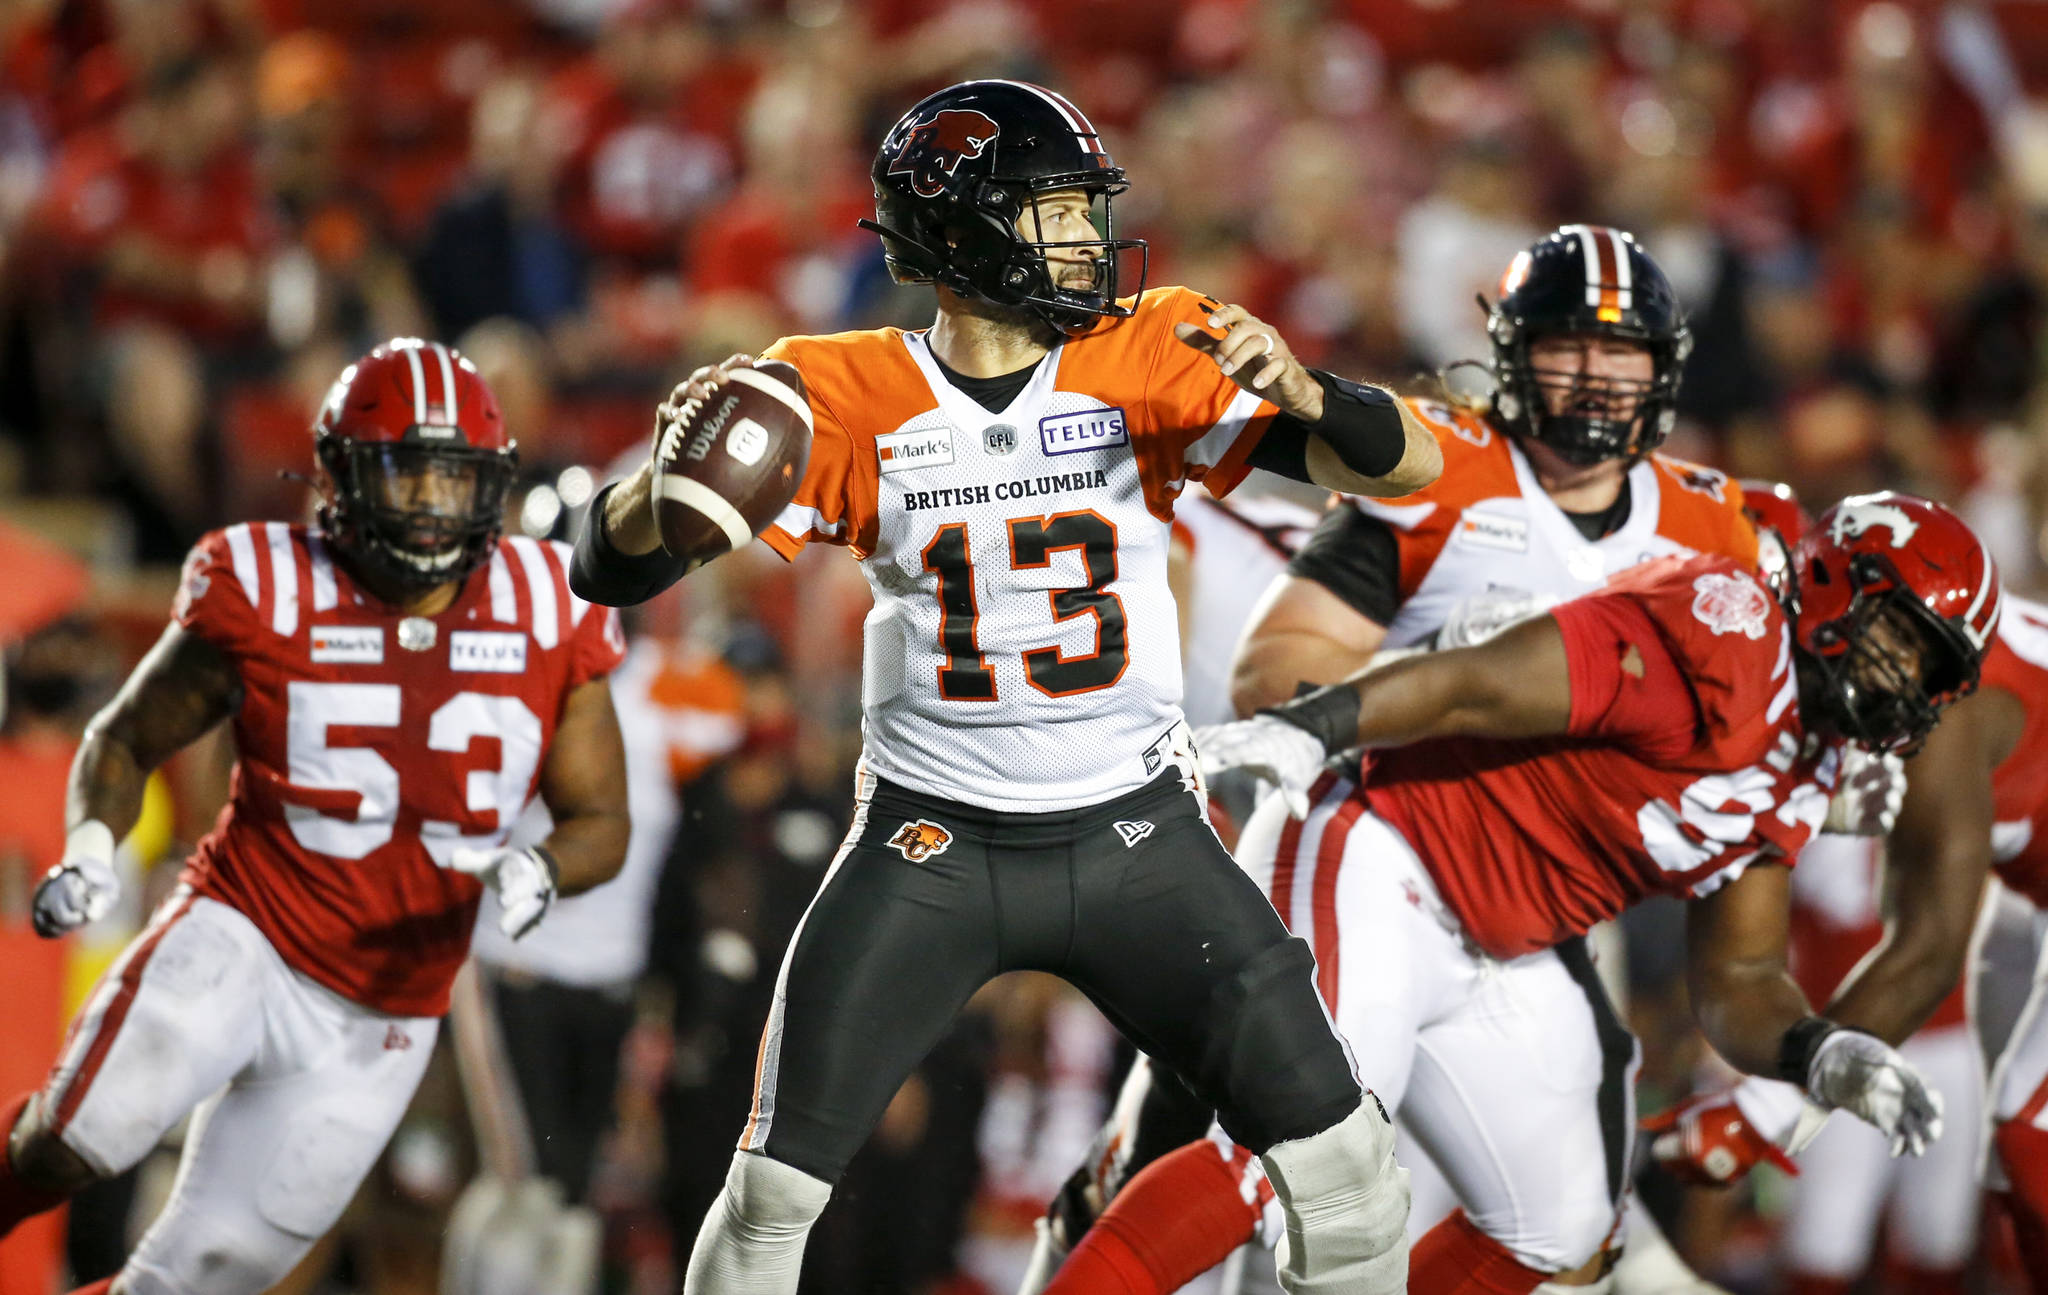 BC Lions' quarterback Michael Reilly, centre, throws the ball as Calgary Stampeders close in during second half CFL football action in Calgary, Thursday, Aug. 12, 2021.THE CANADIAN PRESS/Jeff McIntosh